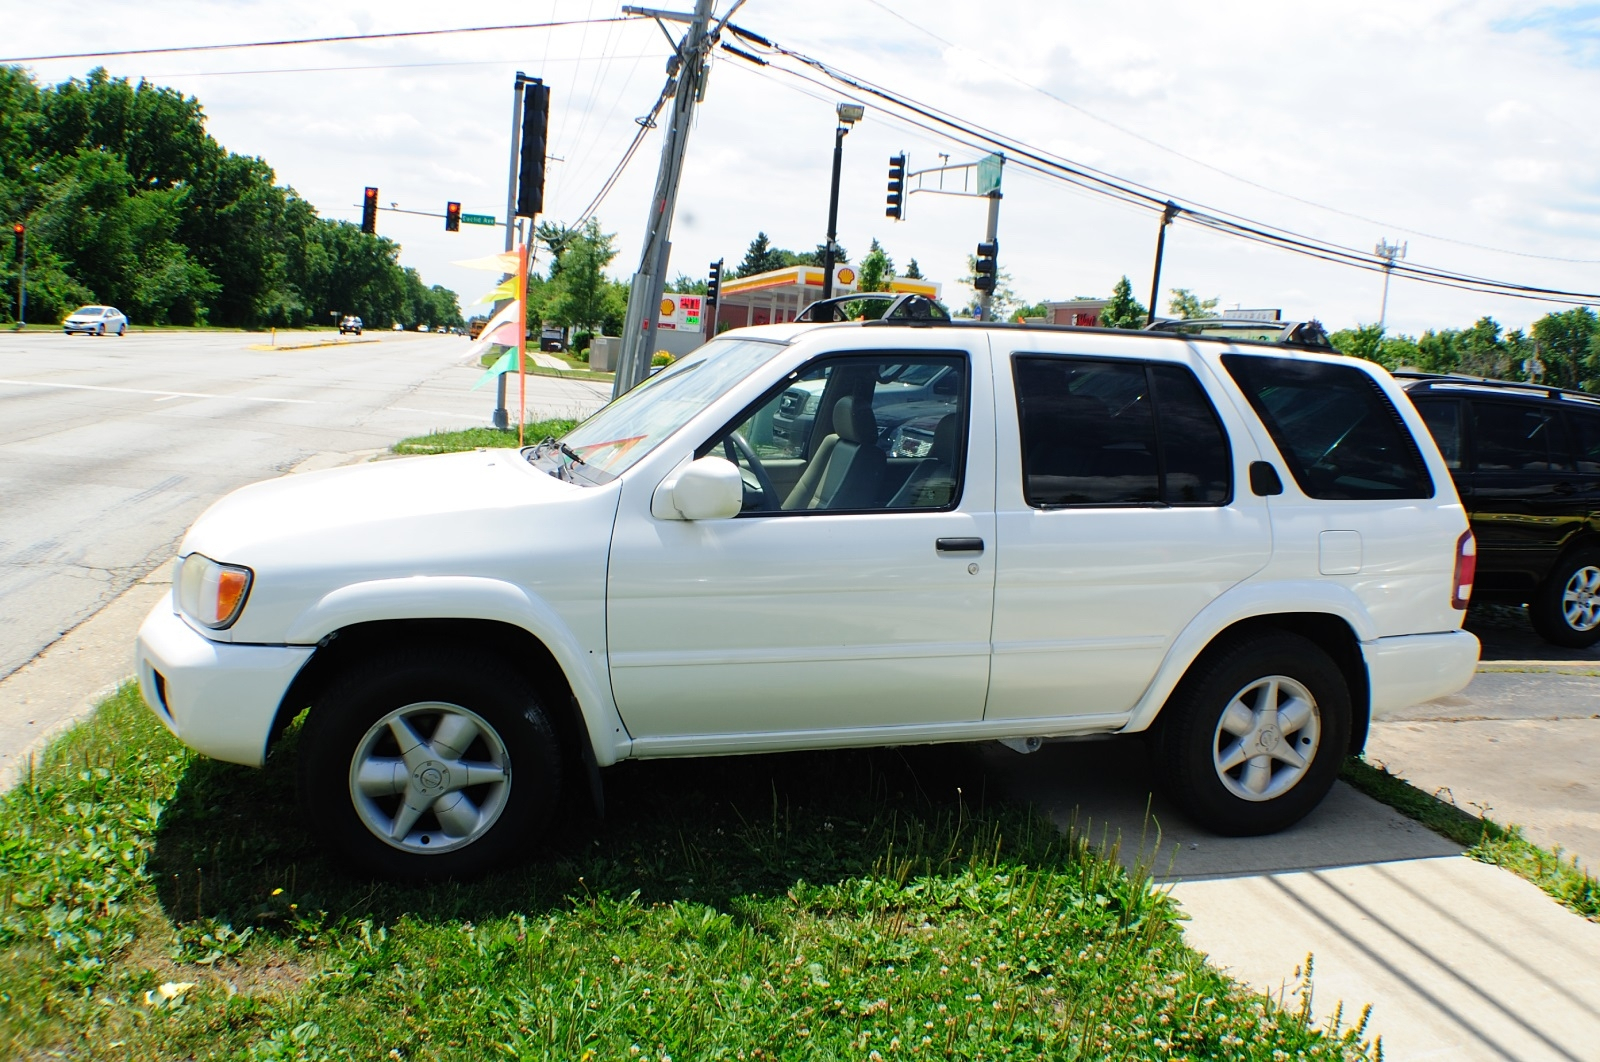 2001 Nissan Pathfinder White Used 4x4 SUV Sale Addison Algonquin Arlington Heights Bartlett